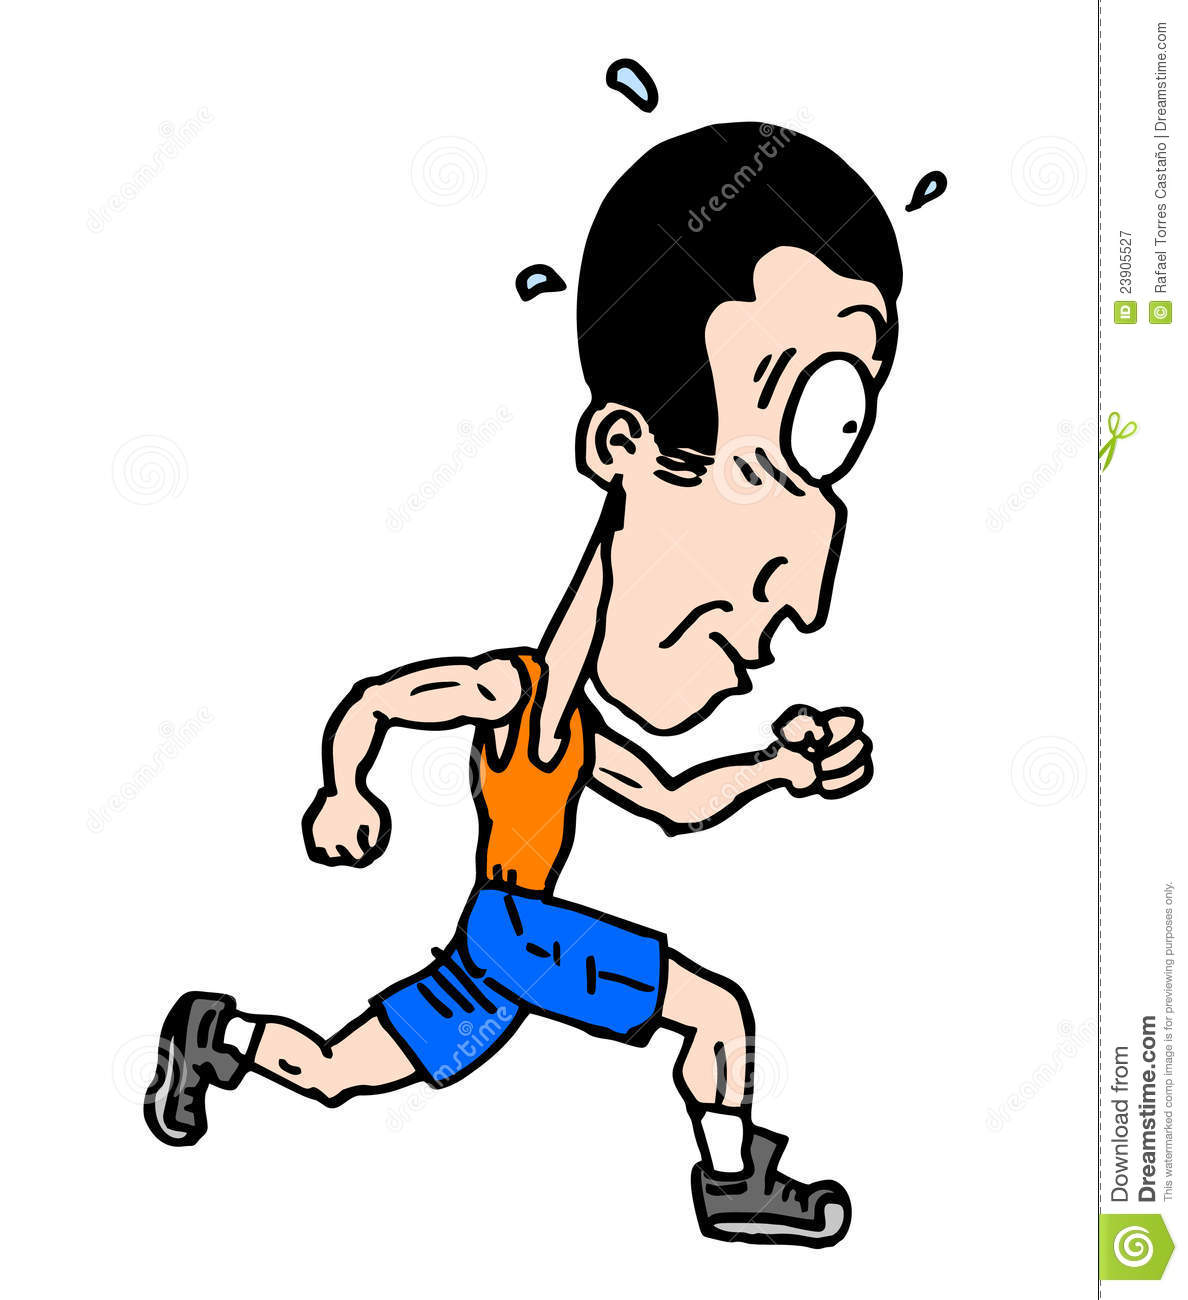 Cartoon Sport Royalty Free Stock Photography - Image: 23905527